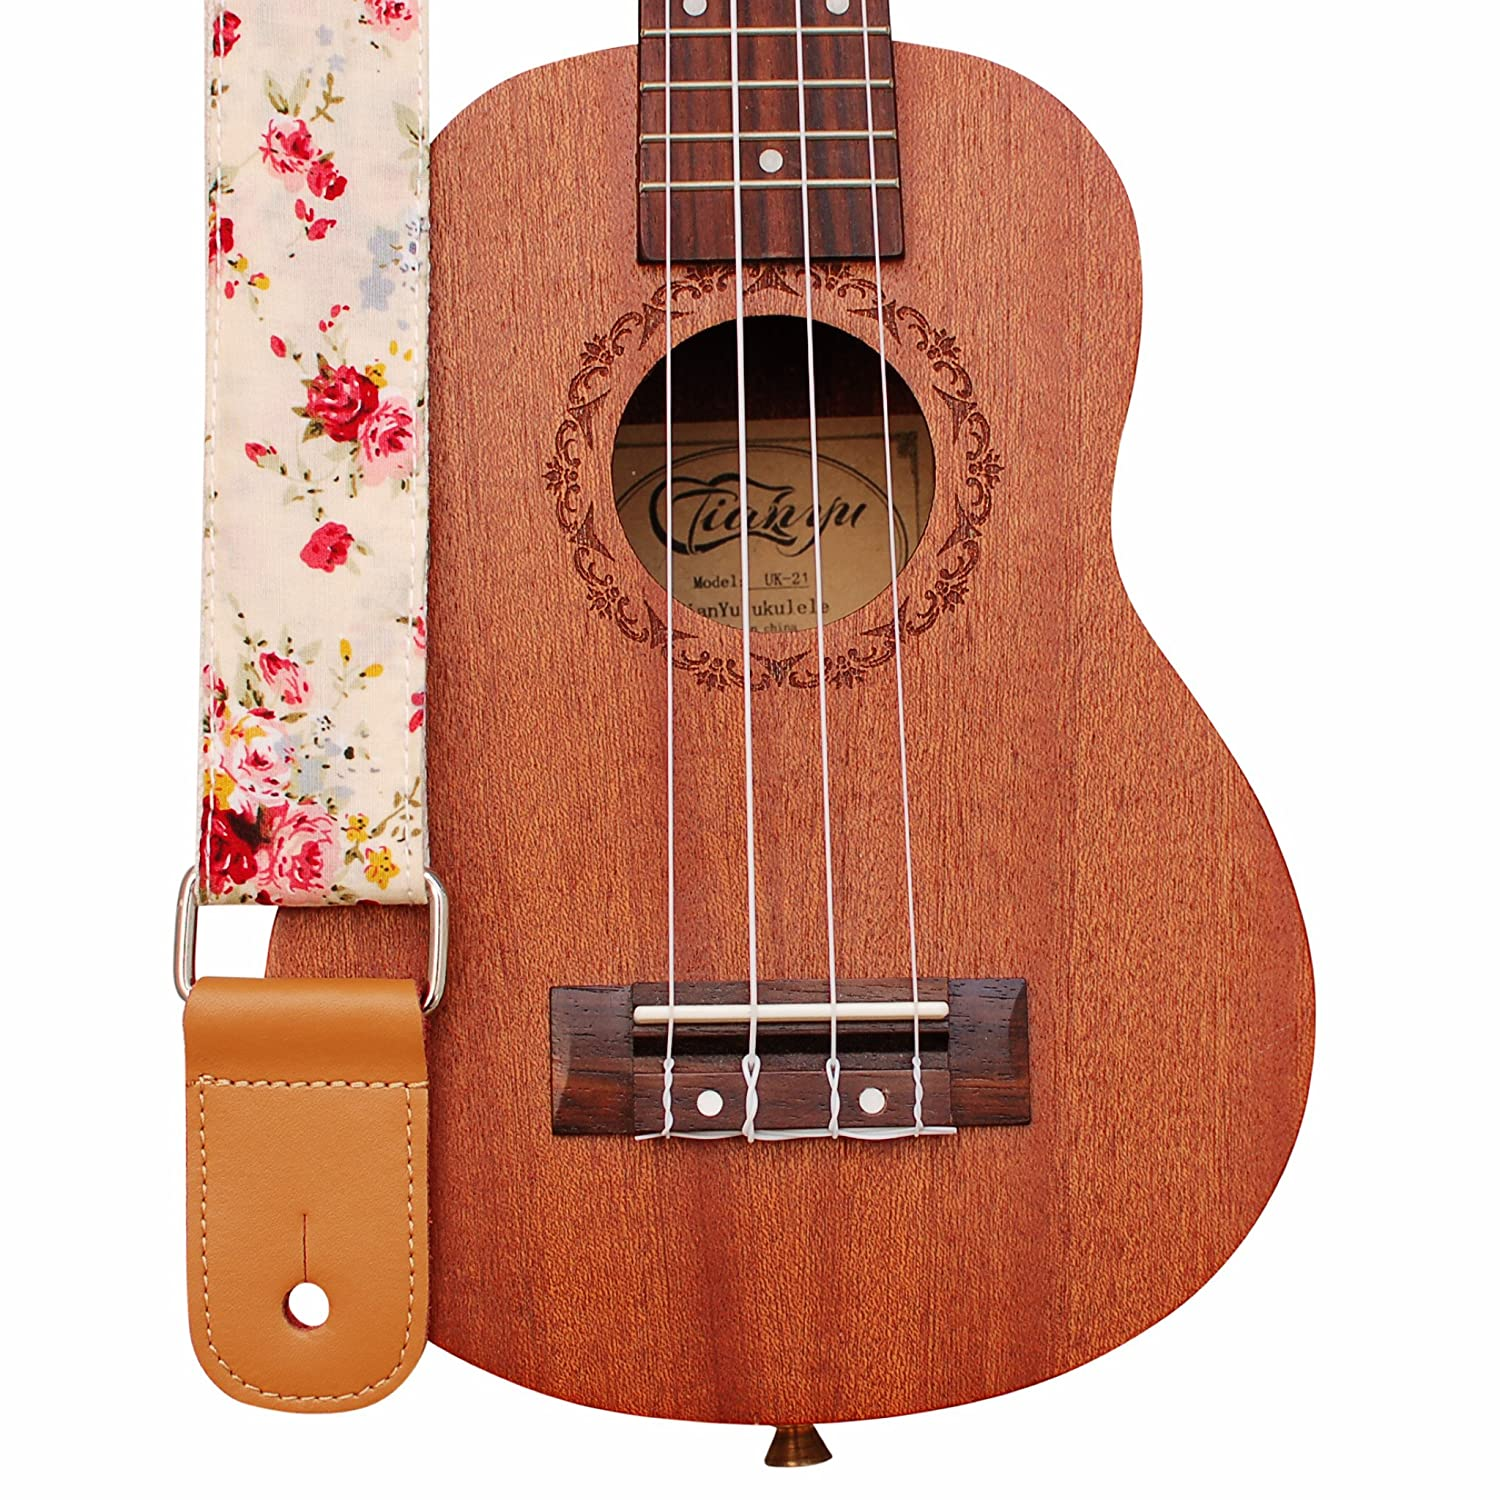 "MUSIC FIRST Original Design ""Rosa Multiflora in Cream"" Soft Cotton & Genuine Leather Ukulele Strap Ukulele Shoulder Strap WSDM-U-STP026"